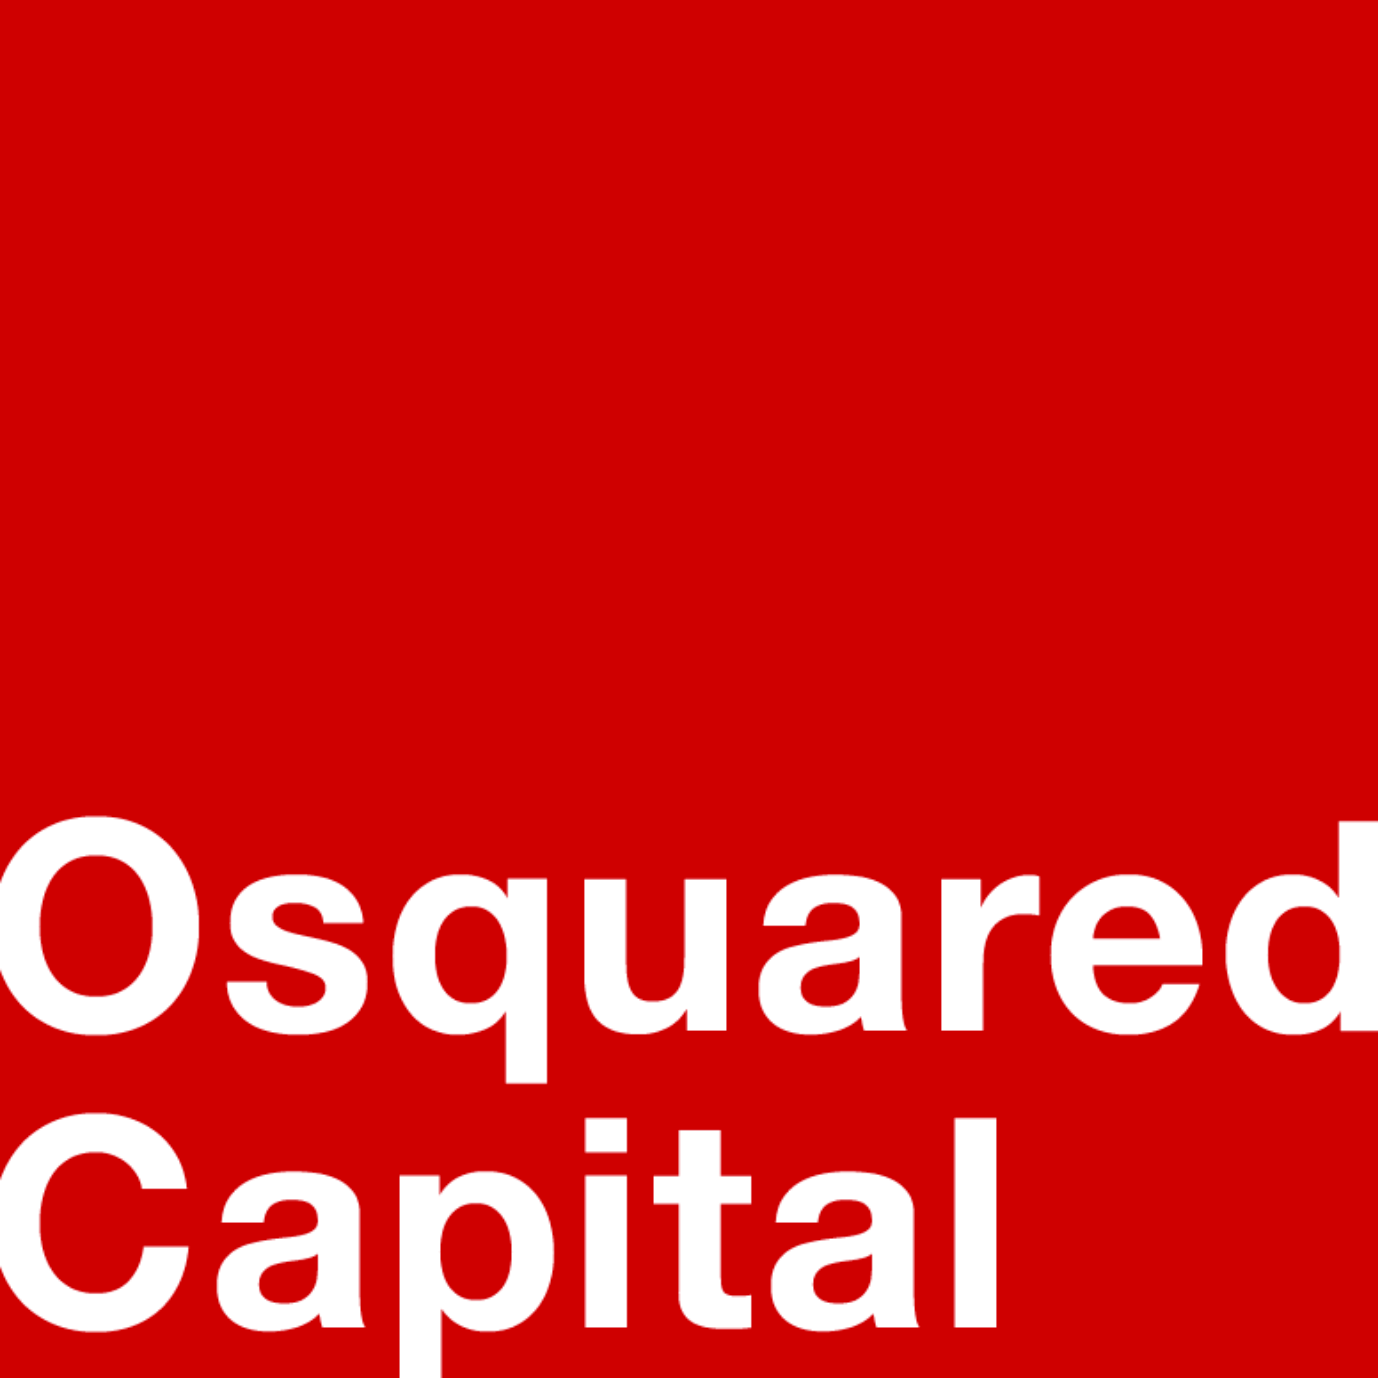 Oskam holding bv zevenbergen capital investments wiki pioneer investments retirement